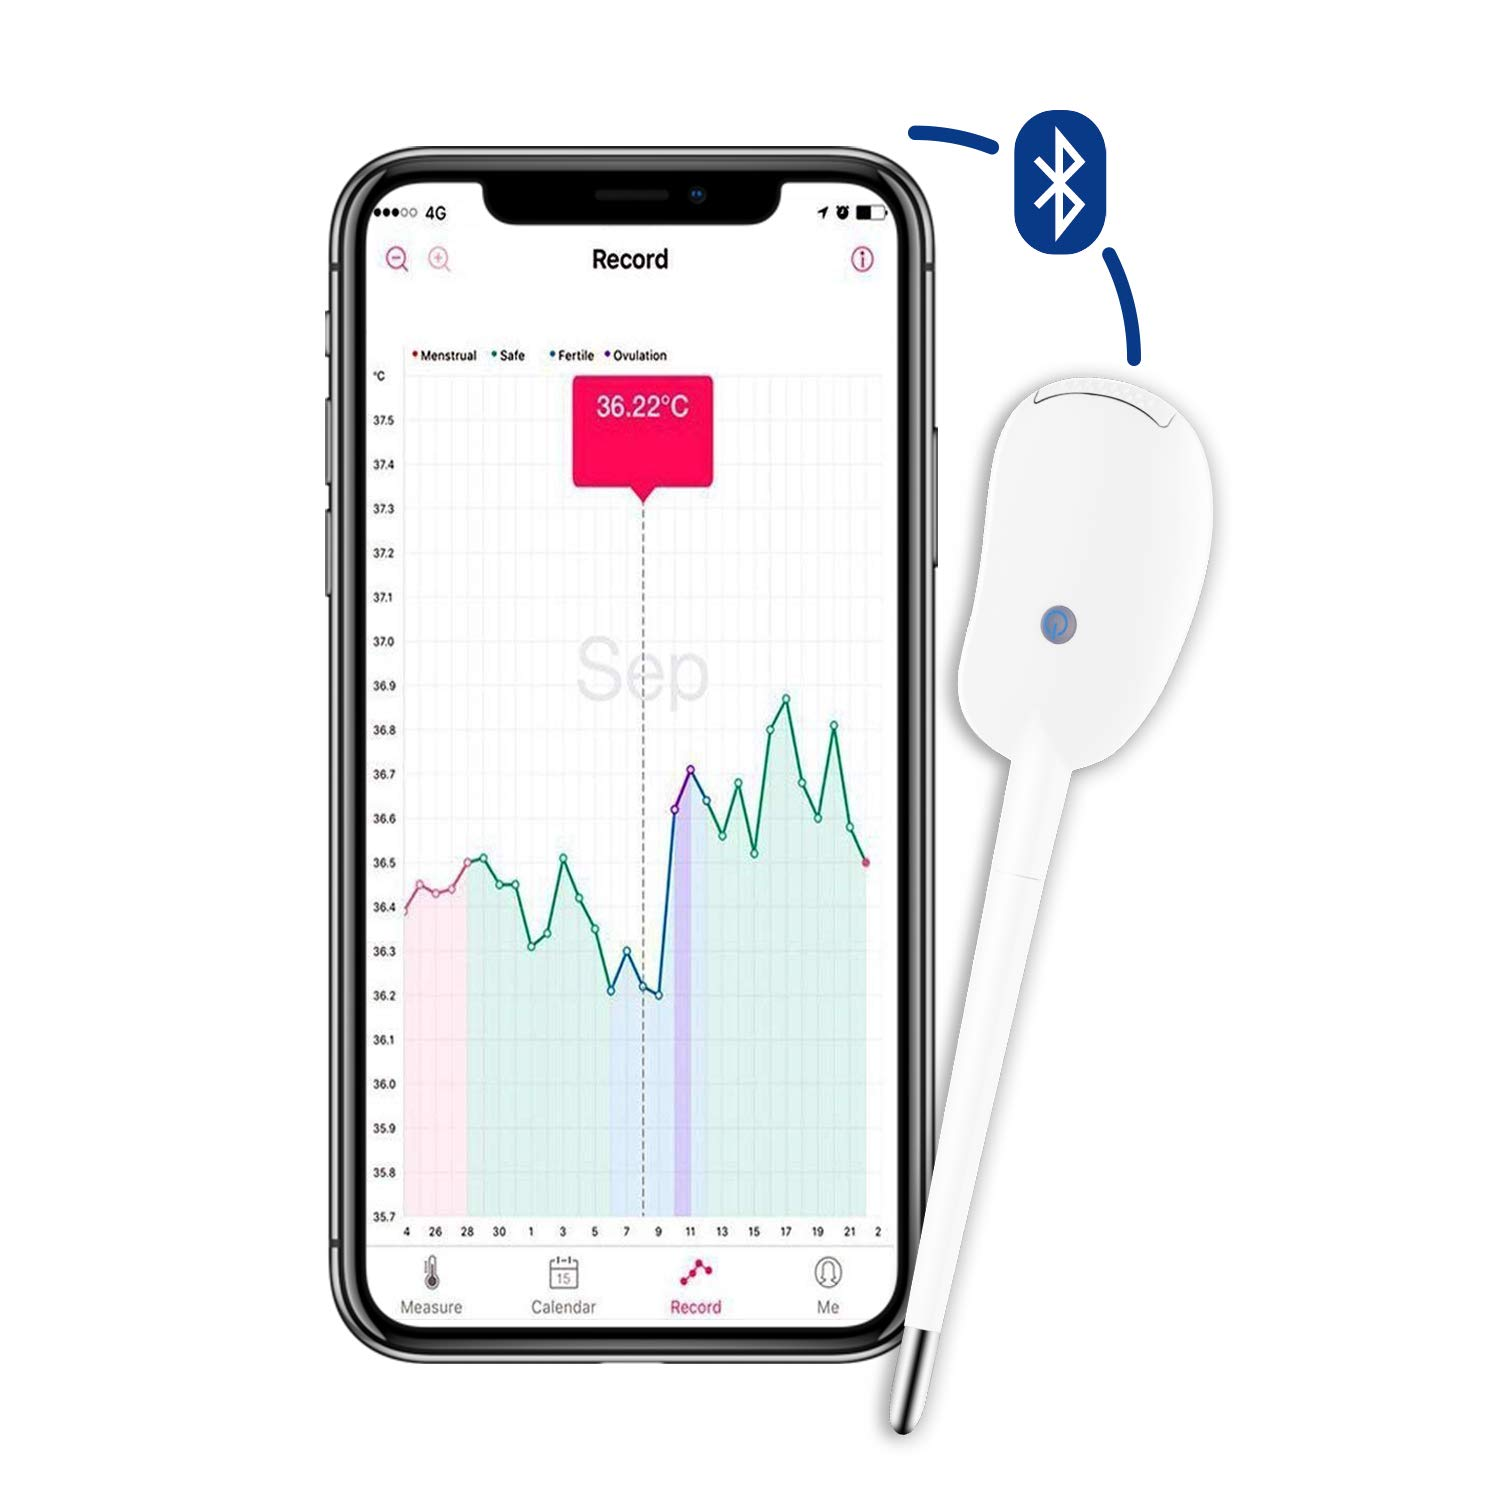 Smart Period Tracker Fertility Monitor, Basal Body Temperature Thermometer (BBT) Accurate Ovulation Prediction, Bluetooth Oral Basal Thermometer for Apple and Android ... by HealthTree